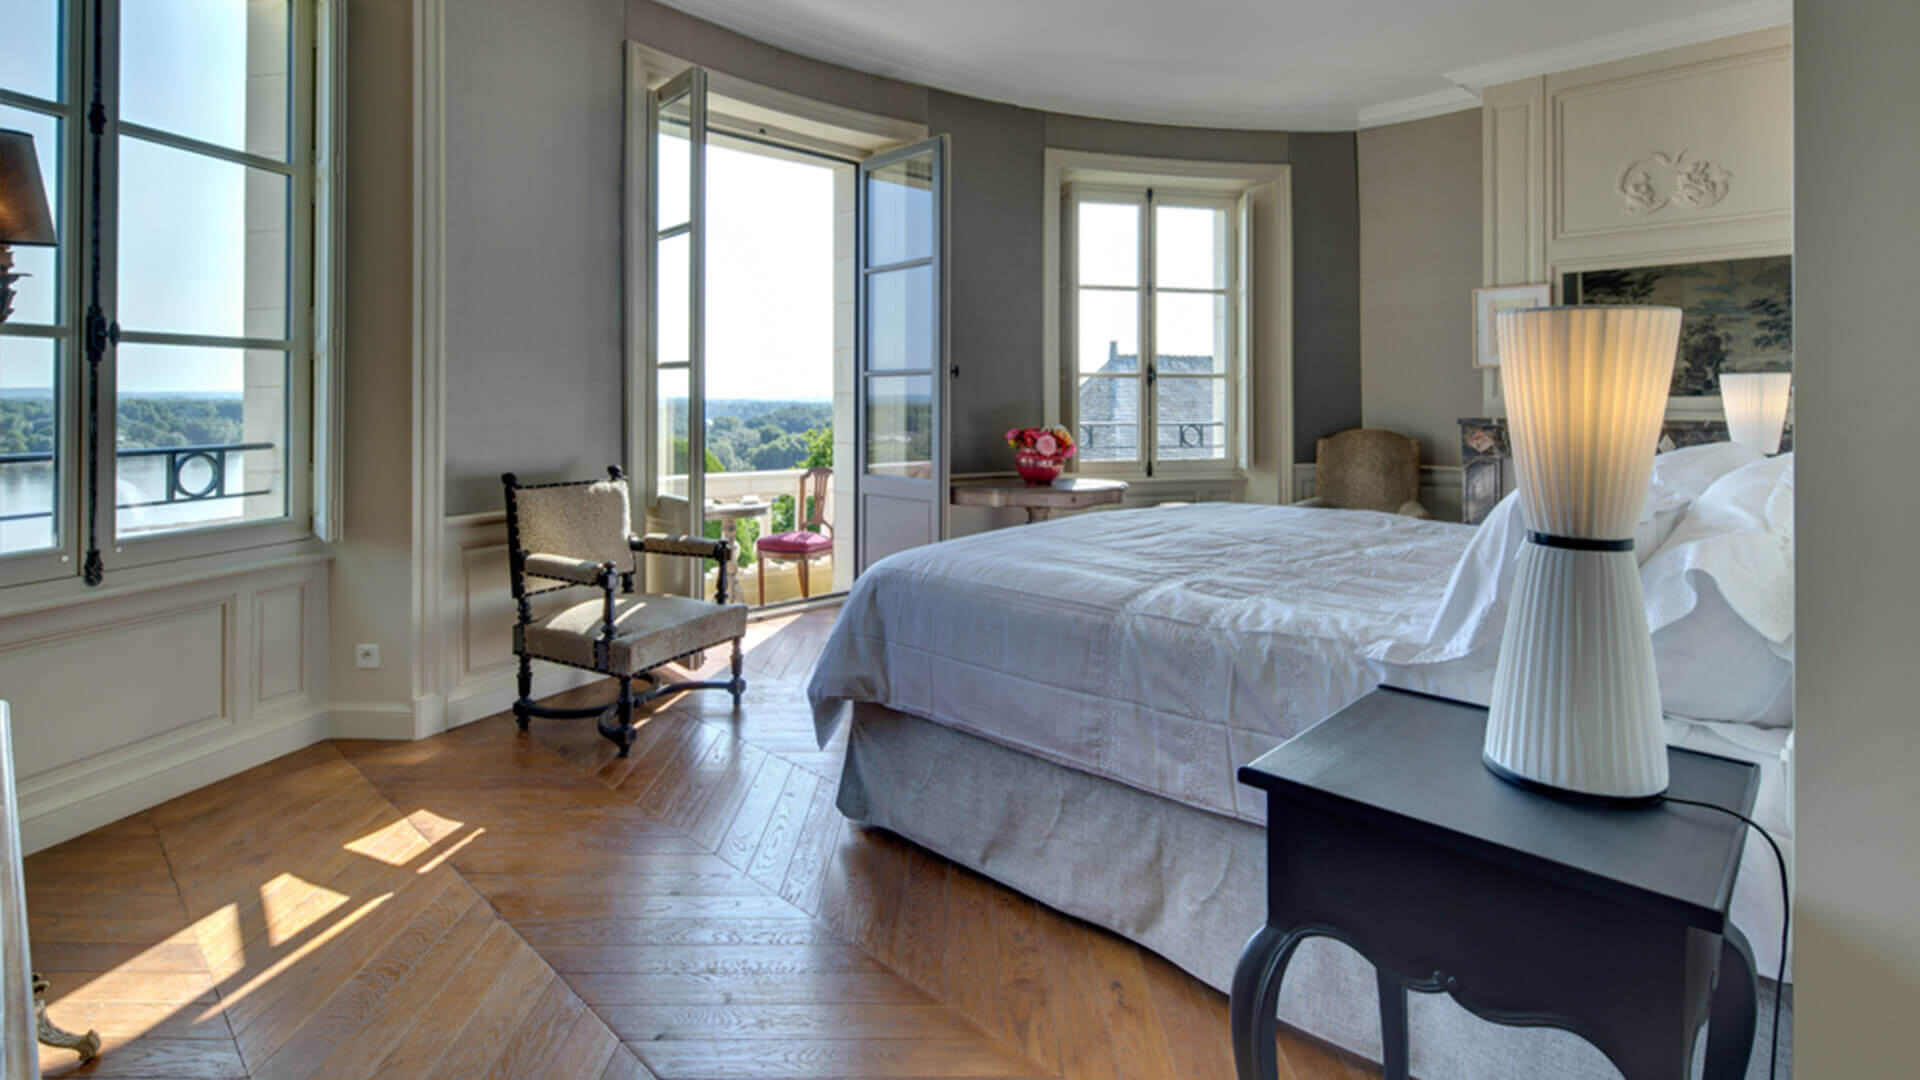 Chateau in loire master bedroom with view of lake